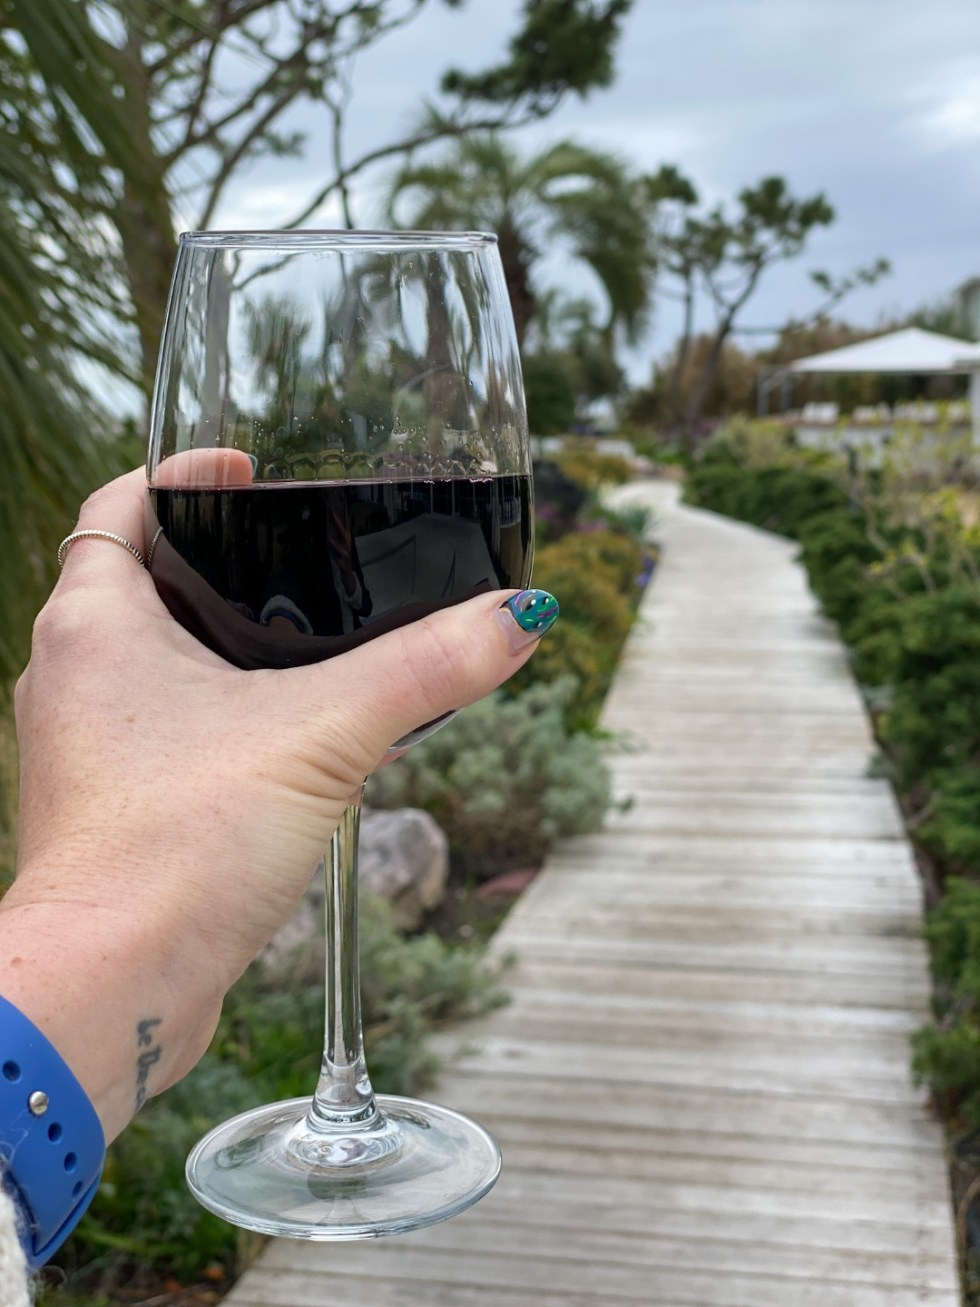 A Spring Weekend in Wilmington, NC: the Best Things to Do - I'm Fixin' To - @imfixintoblog |Weekend in Wilmington by popular NC travel blog, I'm Fixin' To: image of a woman holding a glass of red wine on a wooden boardwalk.